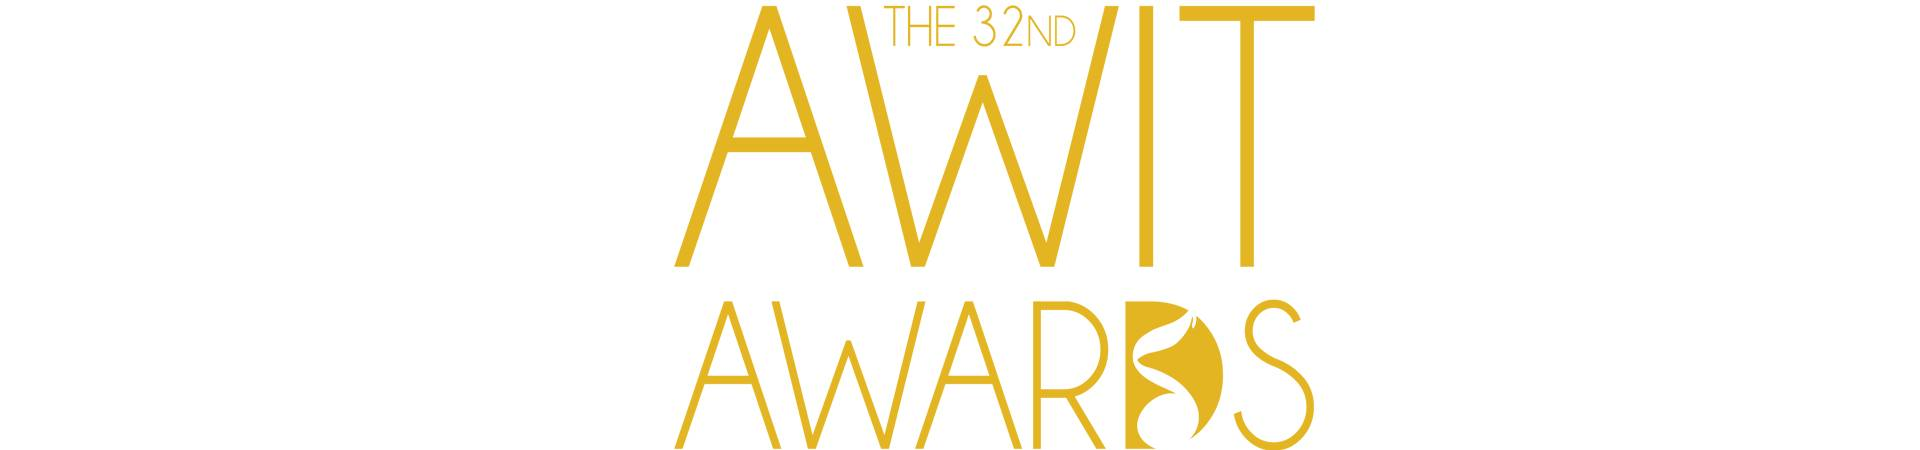 32nd Awit Awards Favorite Music Video of the Year